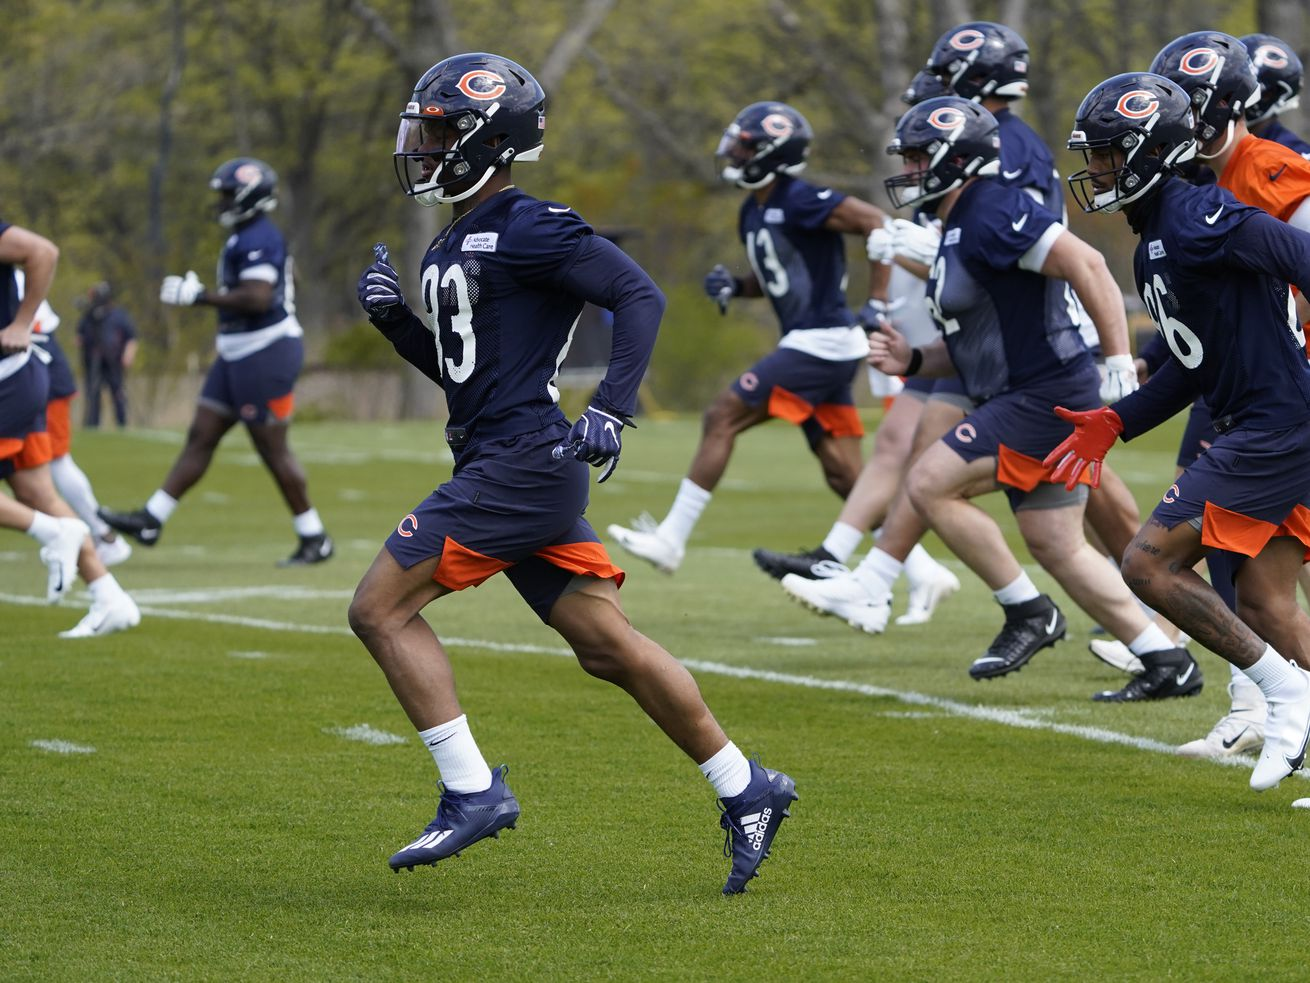 Bears wide receiver Dazz Newsome (83) works out during rookie minicamp last month.